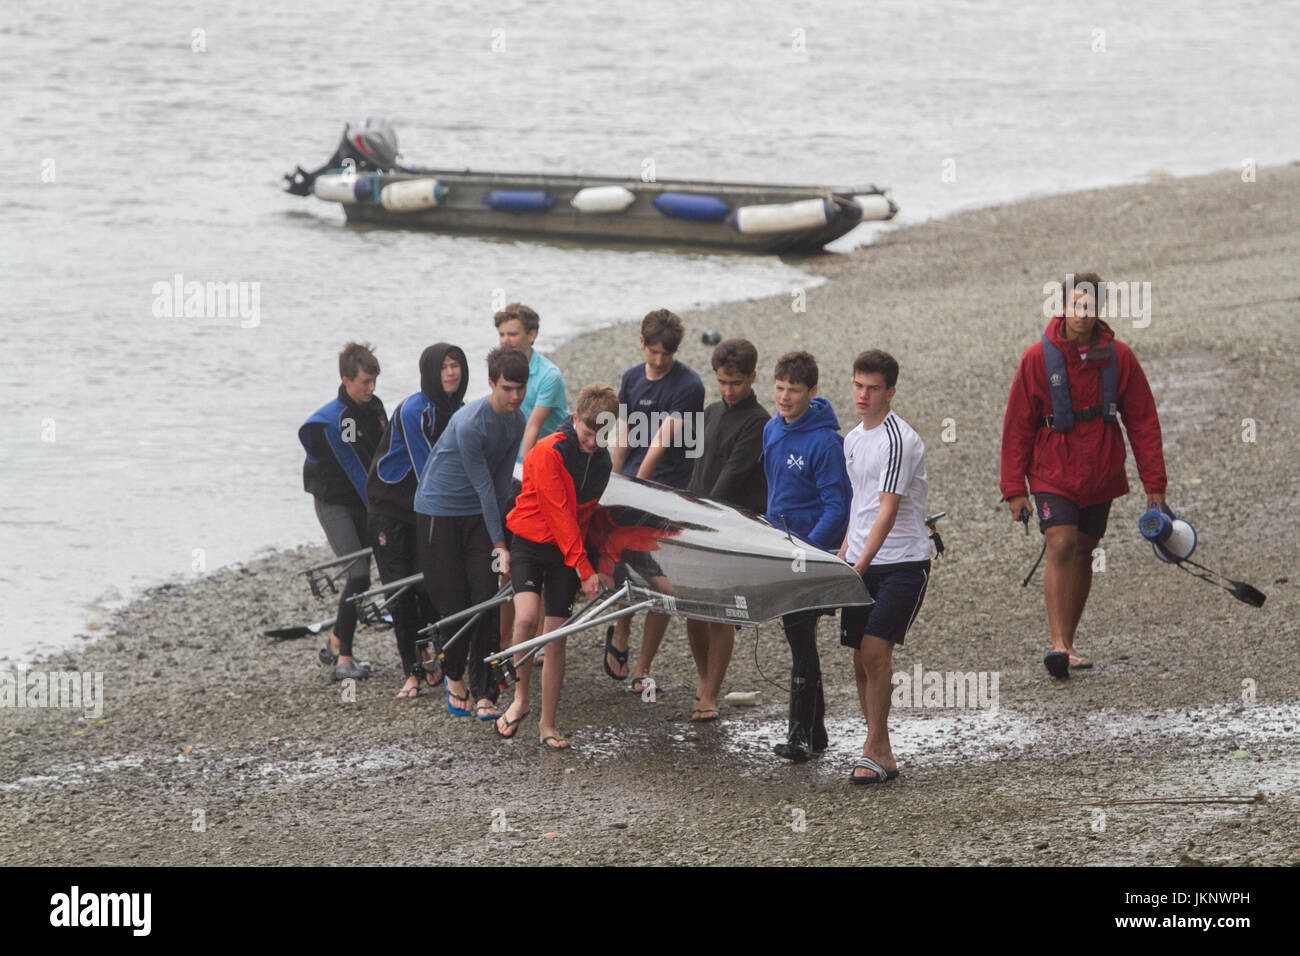 London UK. 24th July 2017. Rowers with sculling boats experience overcast cloudy conditions on River Thames in  Stock Photo